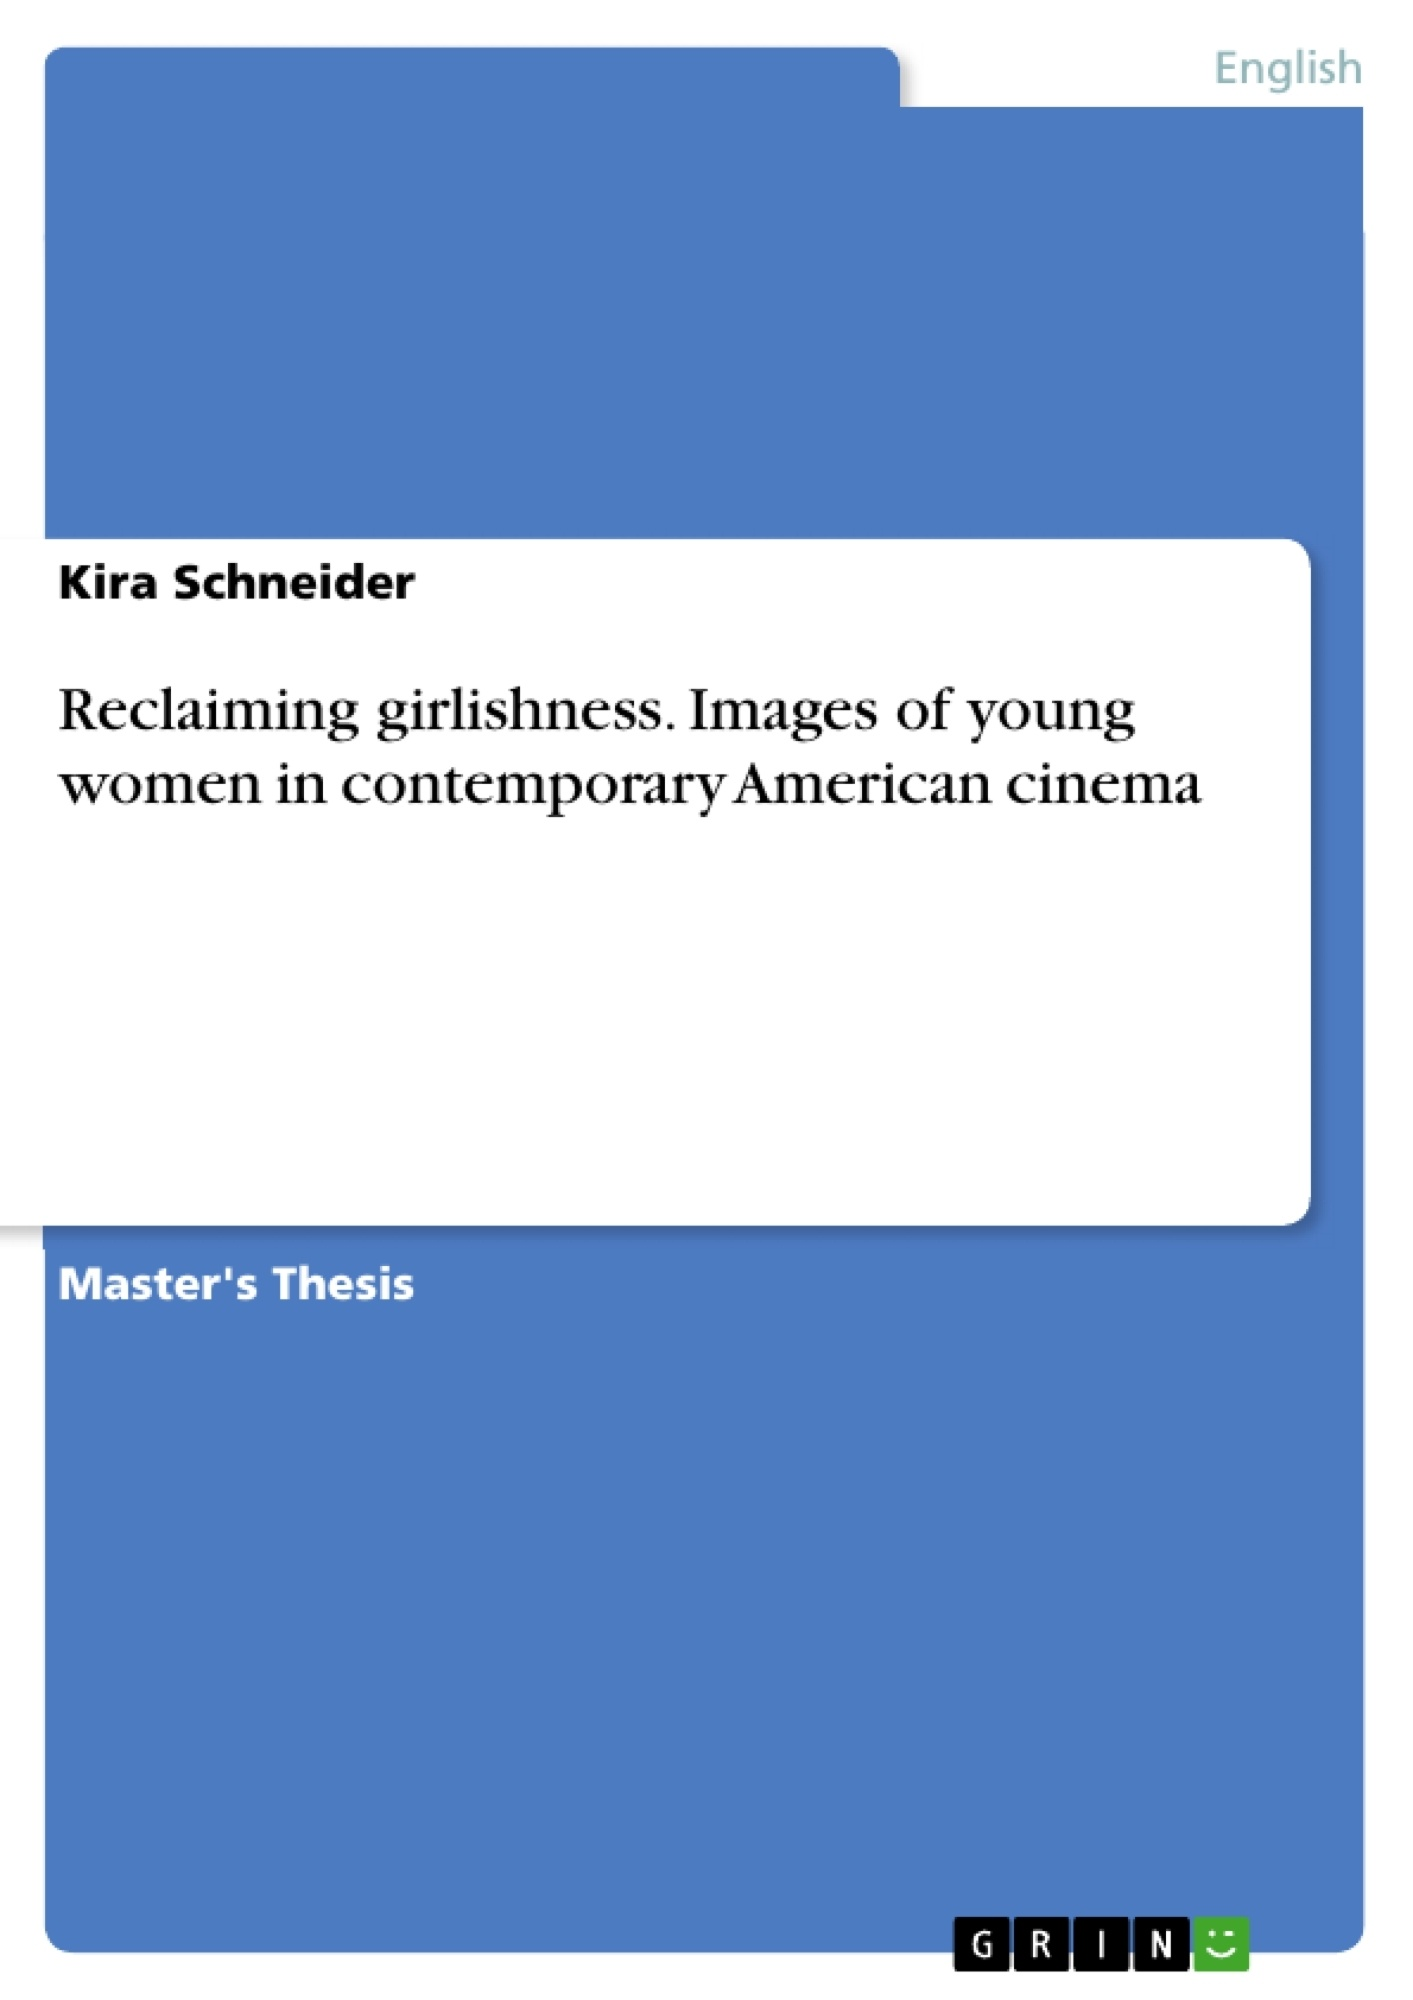 Title: Reclaiming girlishness. Images of young women in contemporary American cinema